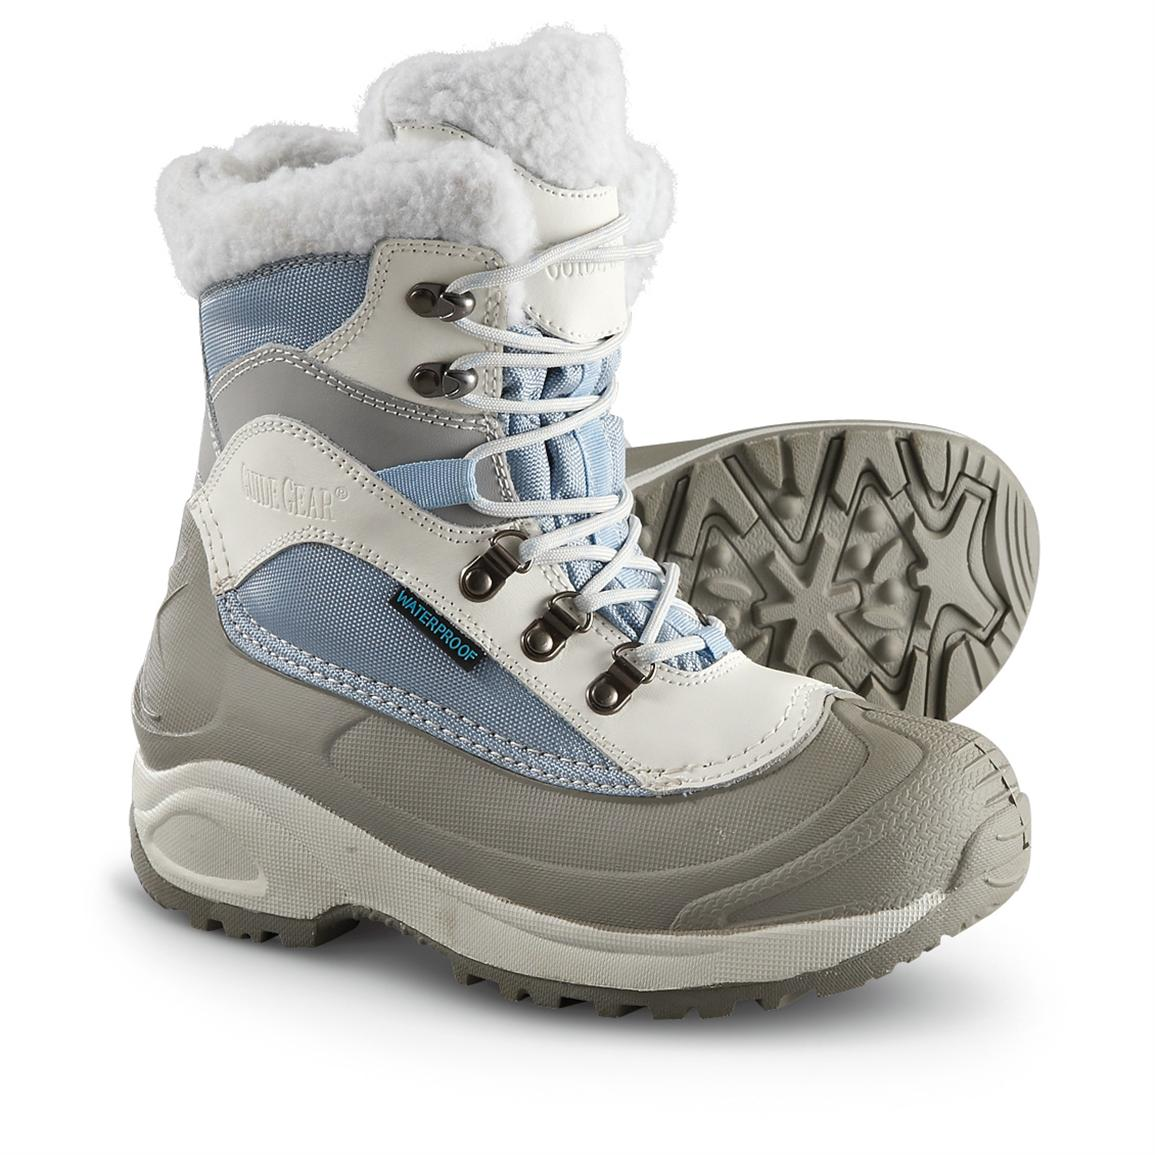 Waterproof Snow Boots Women 2KwbKKnL